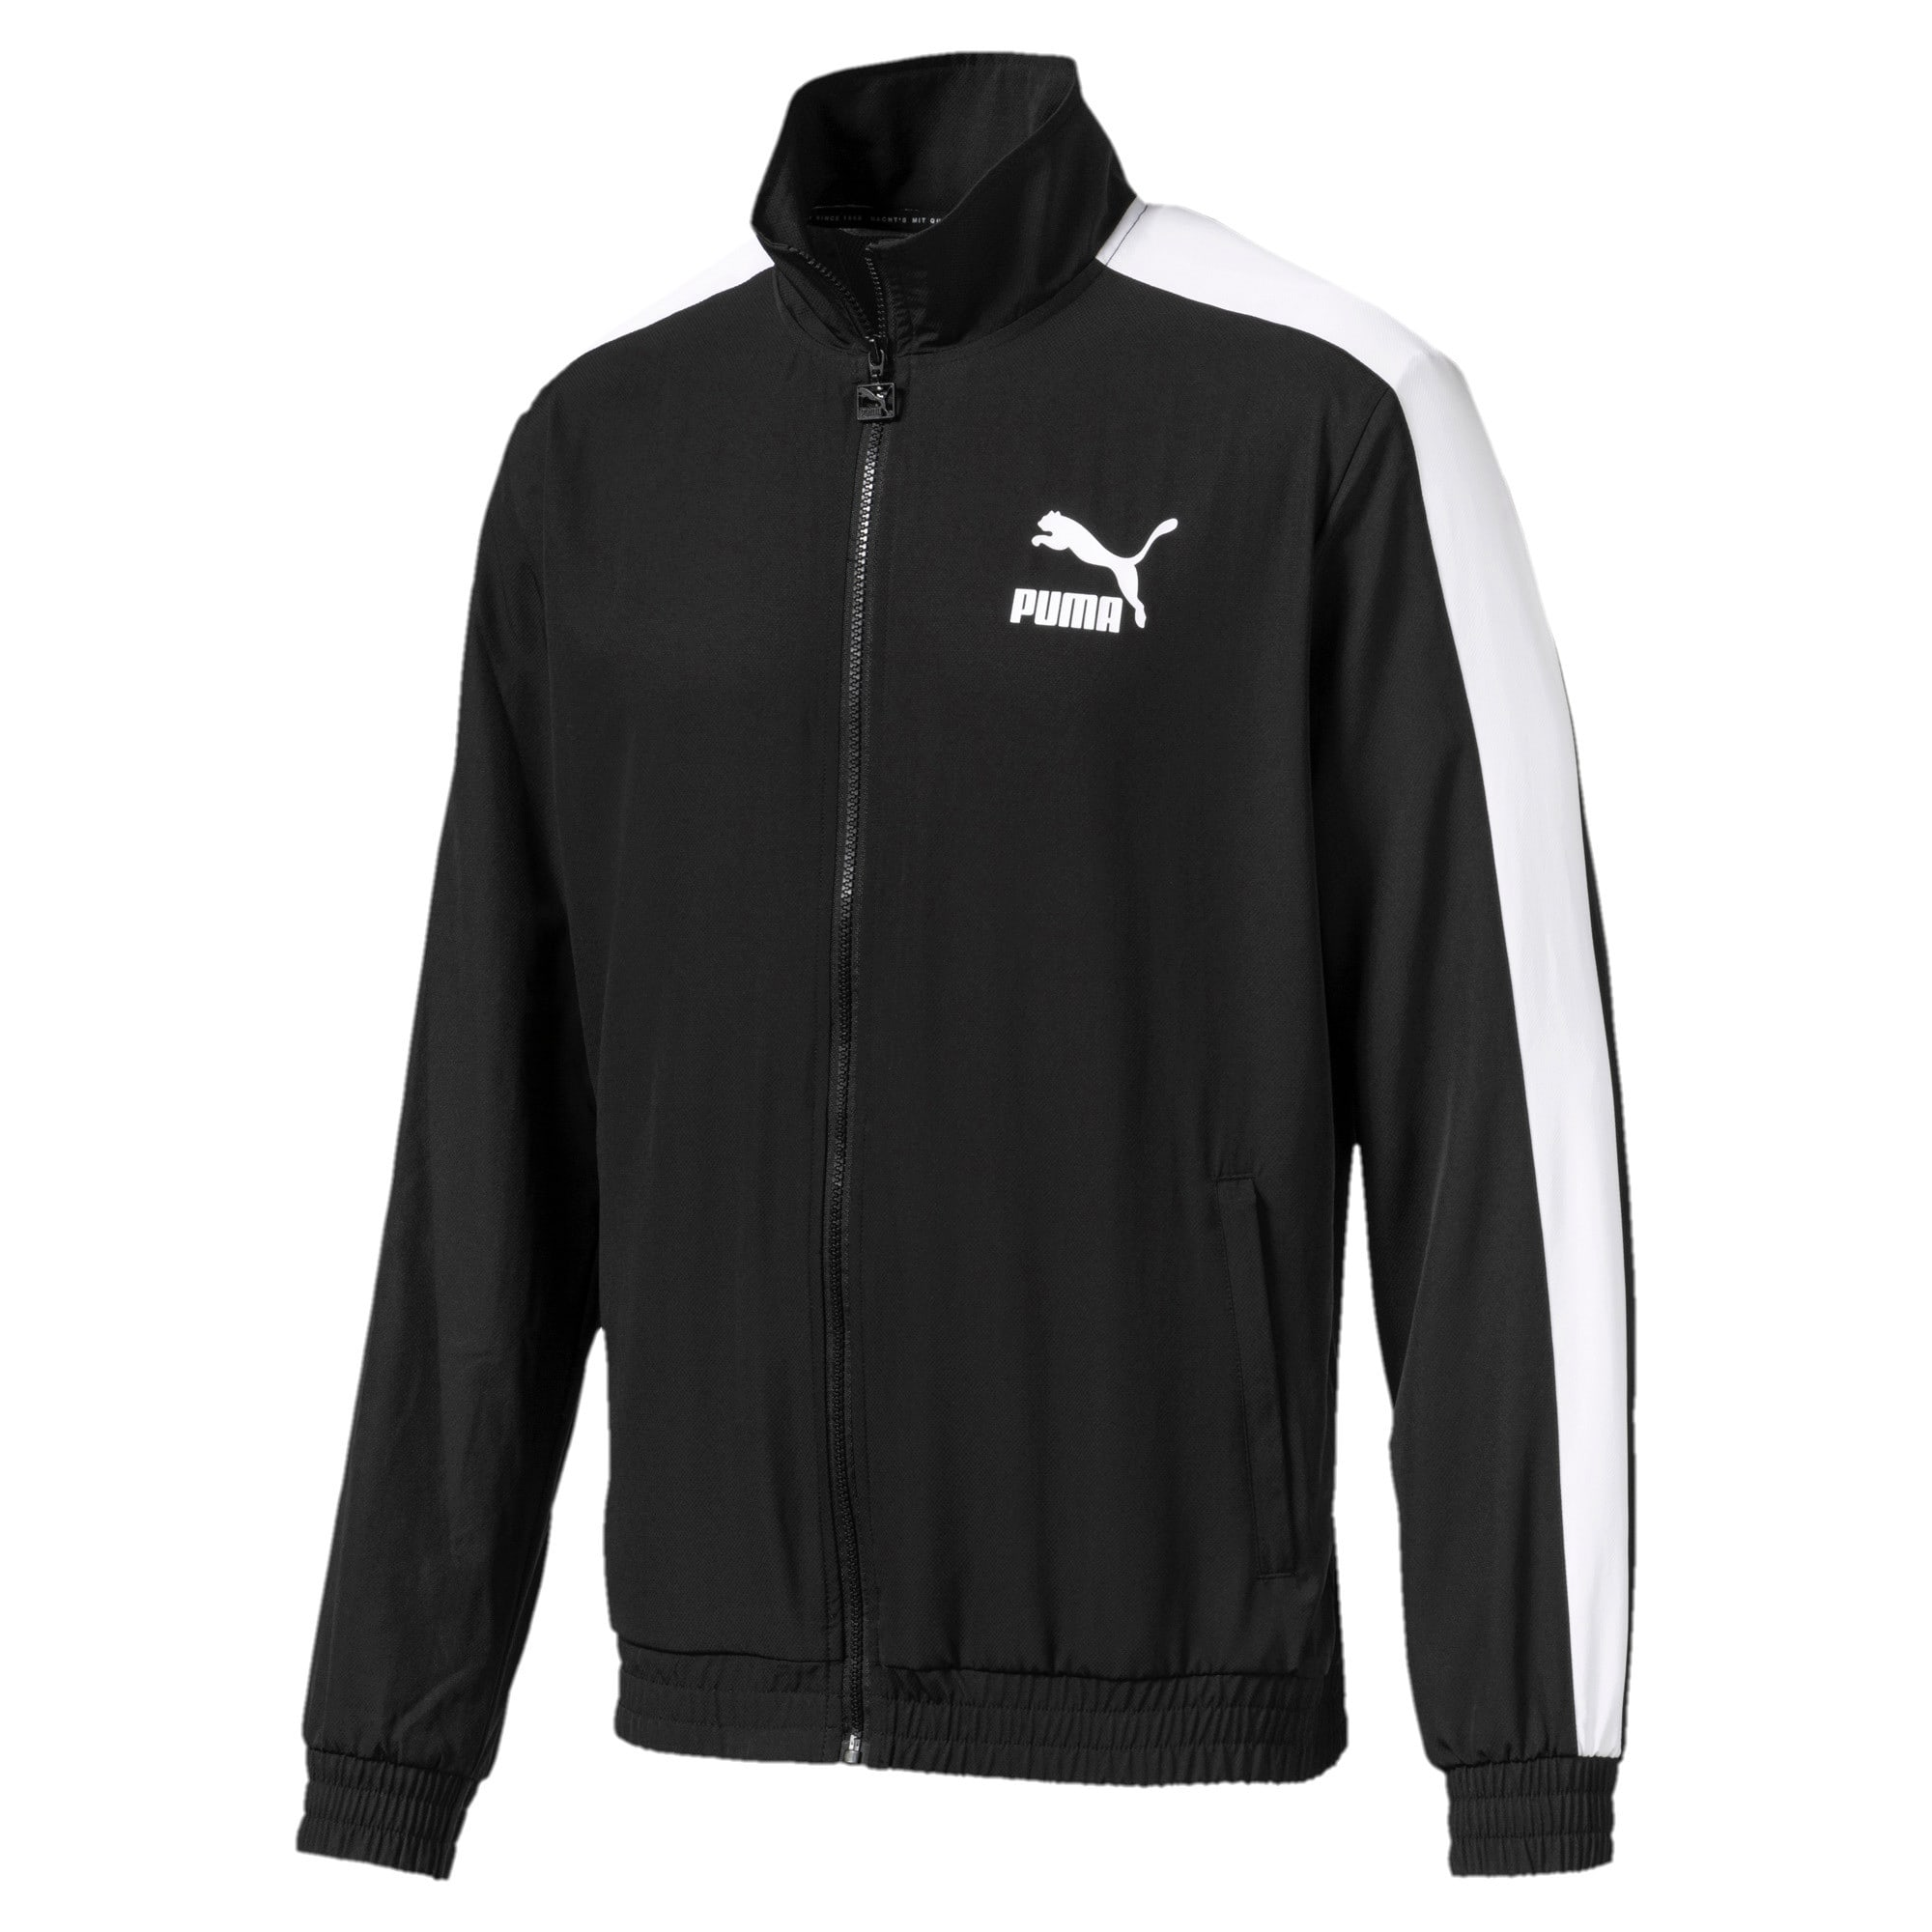 Thumbnail 1 of Iconic T7 Men's Woven Track Jacket, Puma Black, medium